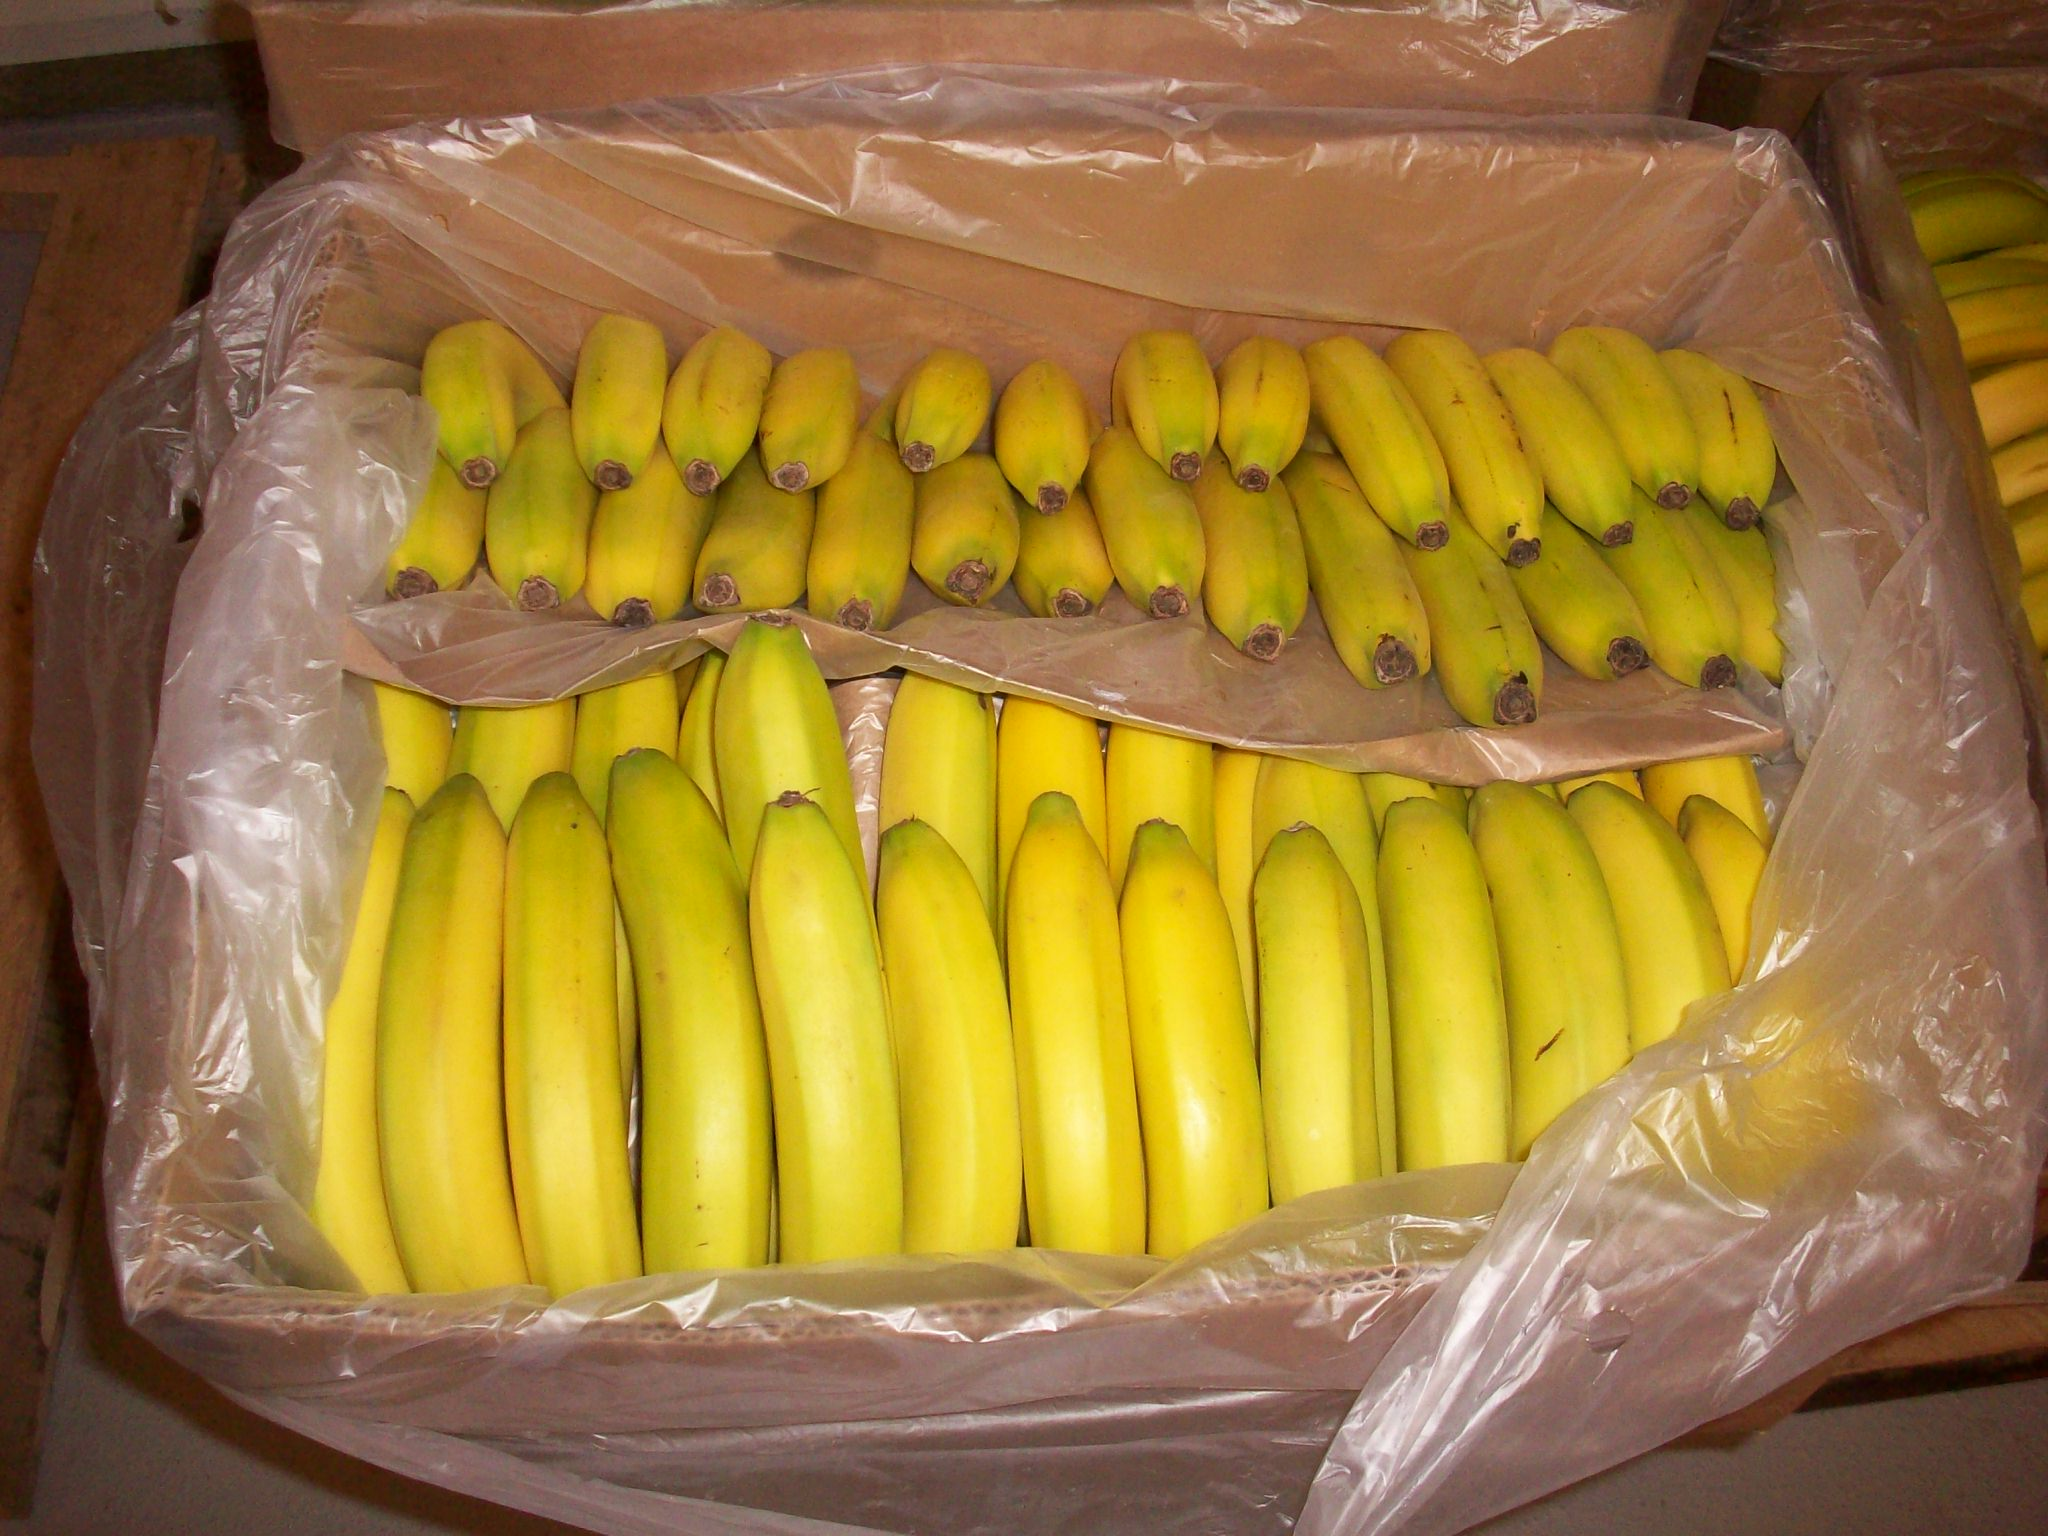 If we each throw out 20lbs of food per month, that's like tossing half a case of bananas!